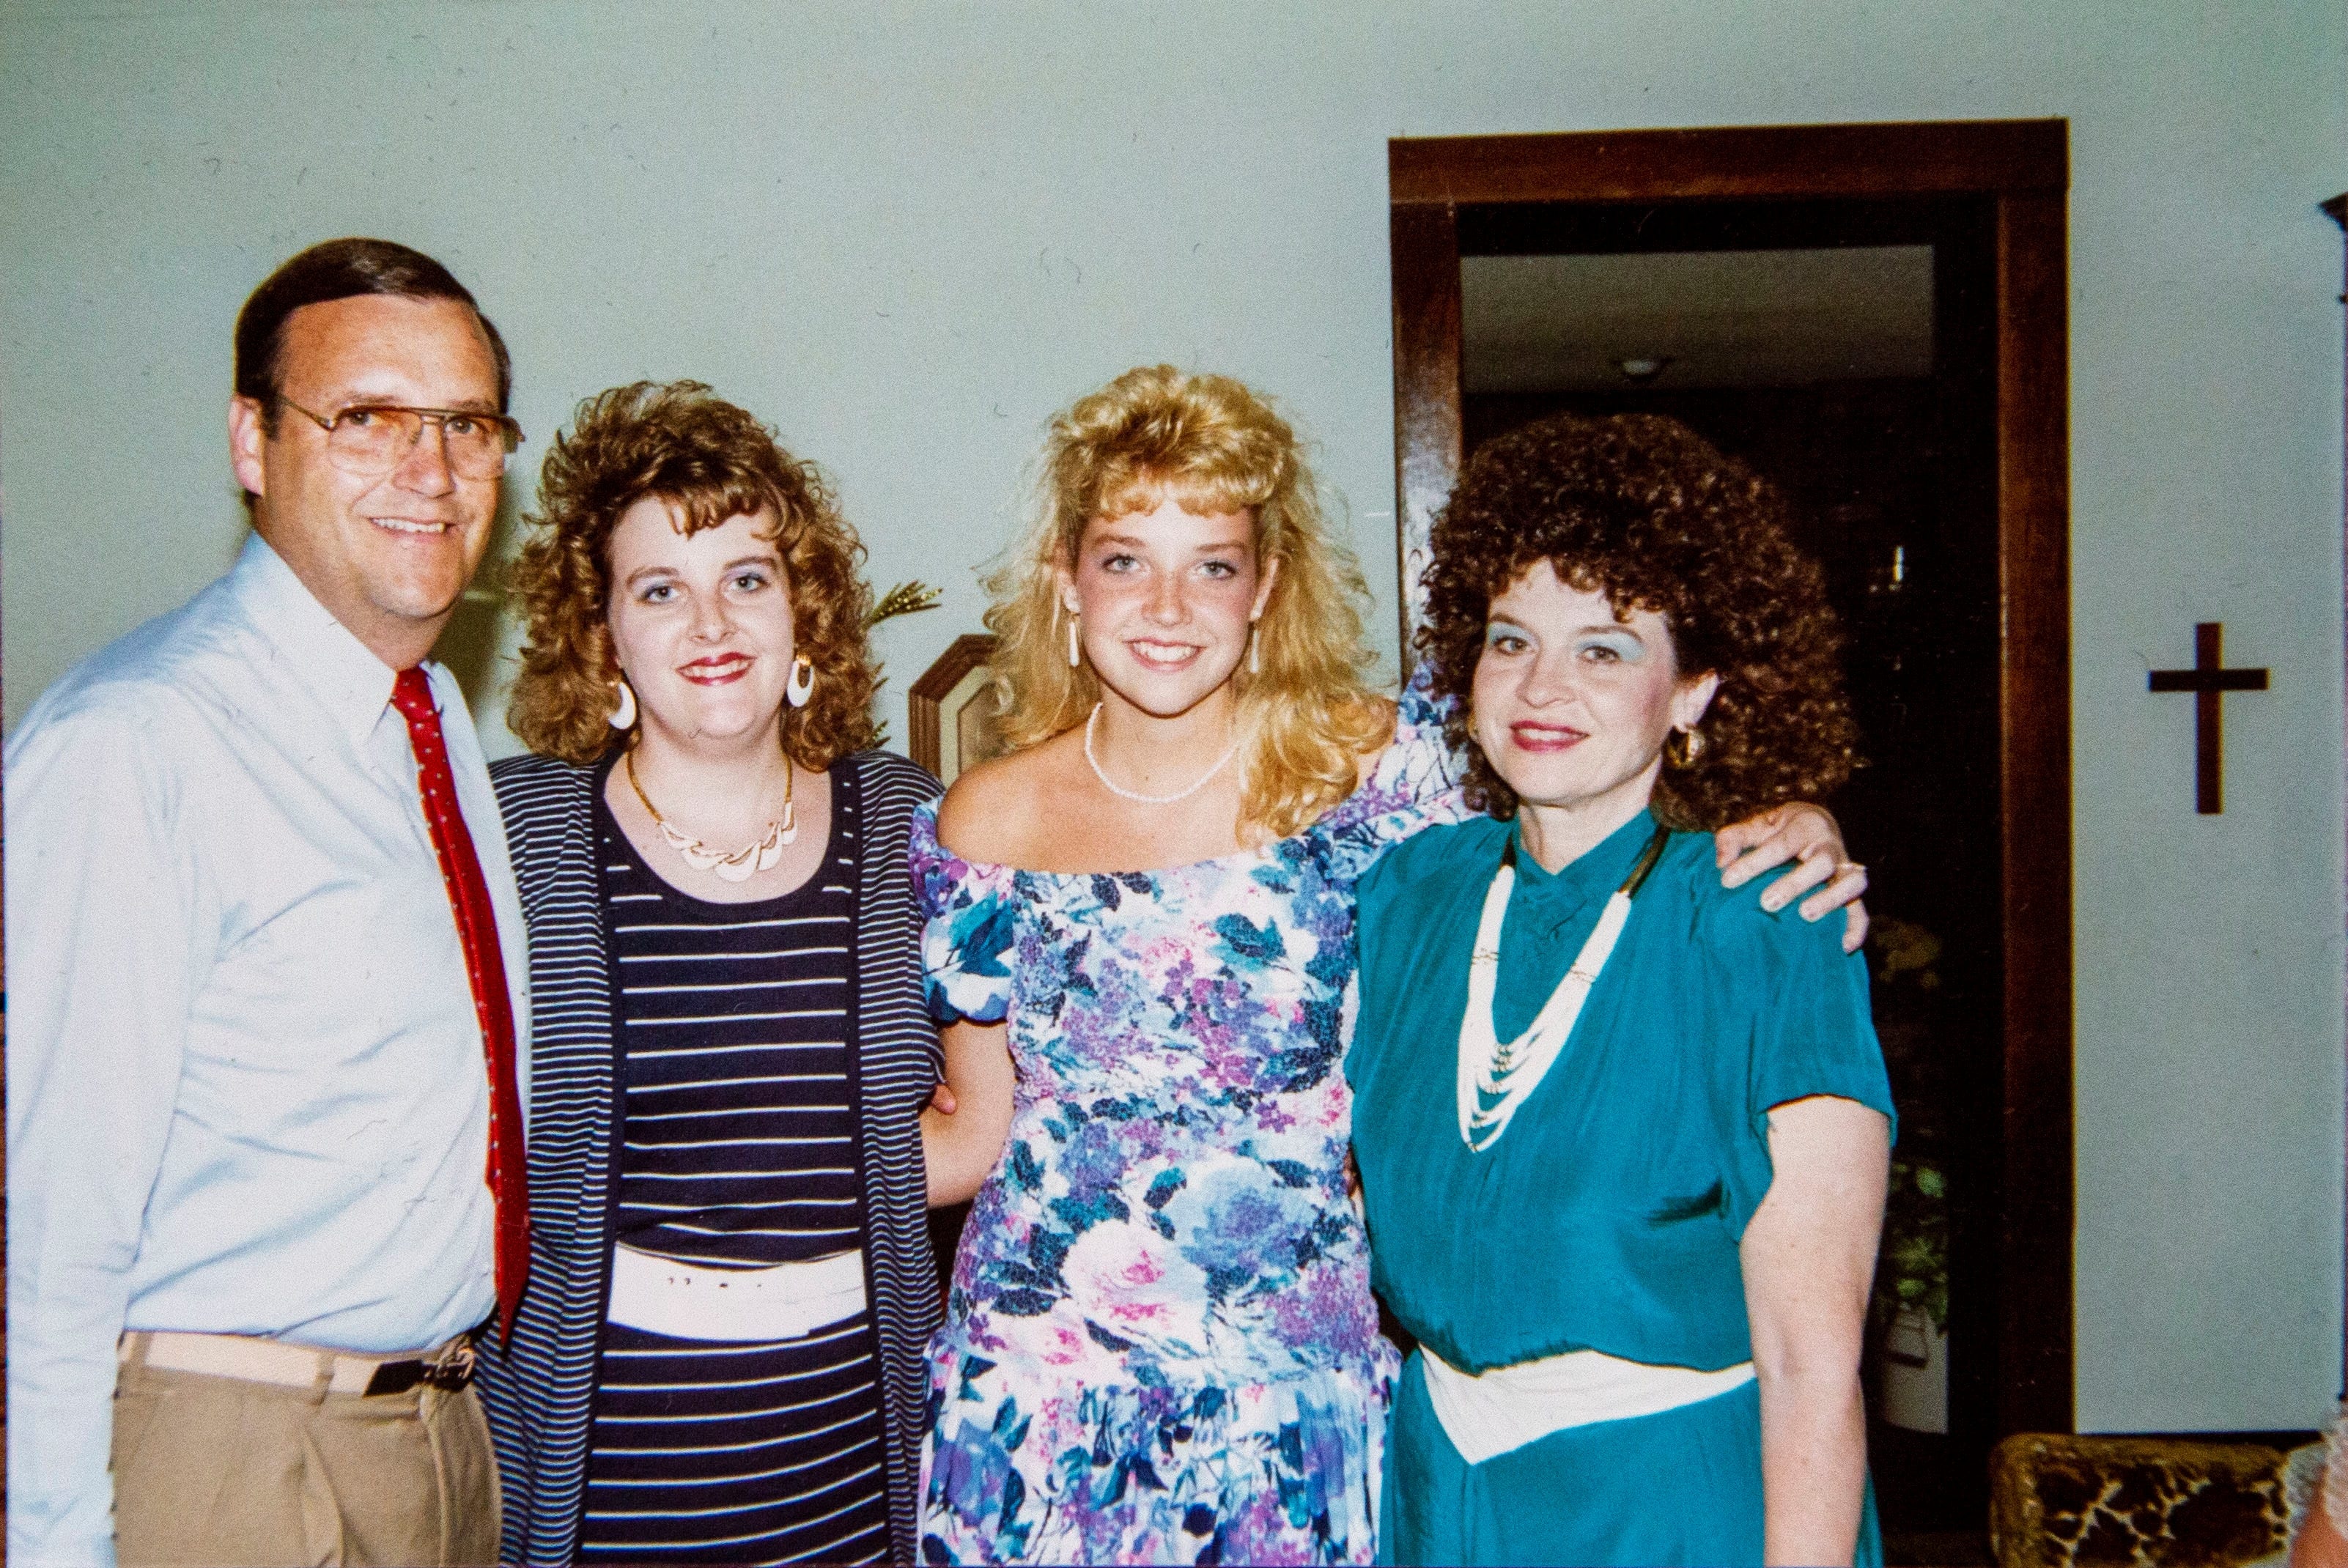 Suzanne Winkelpleck shares old family photos of her father, Lou Luiken, at her home of Feb. 11, 2021. From left are Lou, his daughters Jennifer and Suzanne, and his wife, Patty.